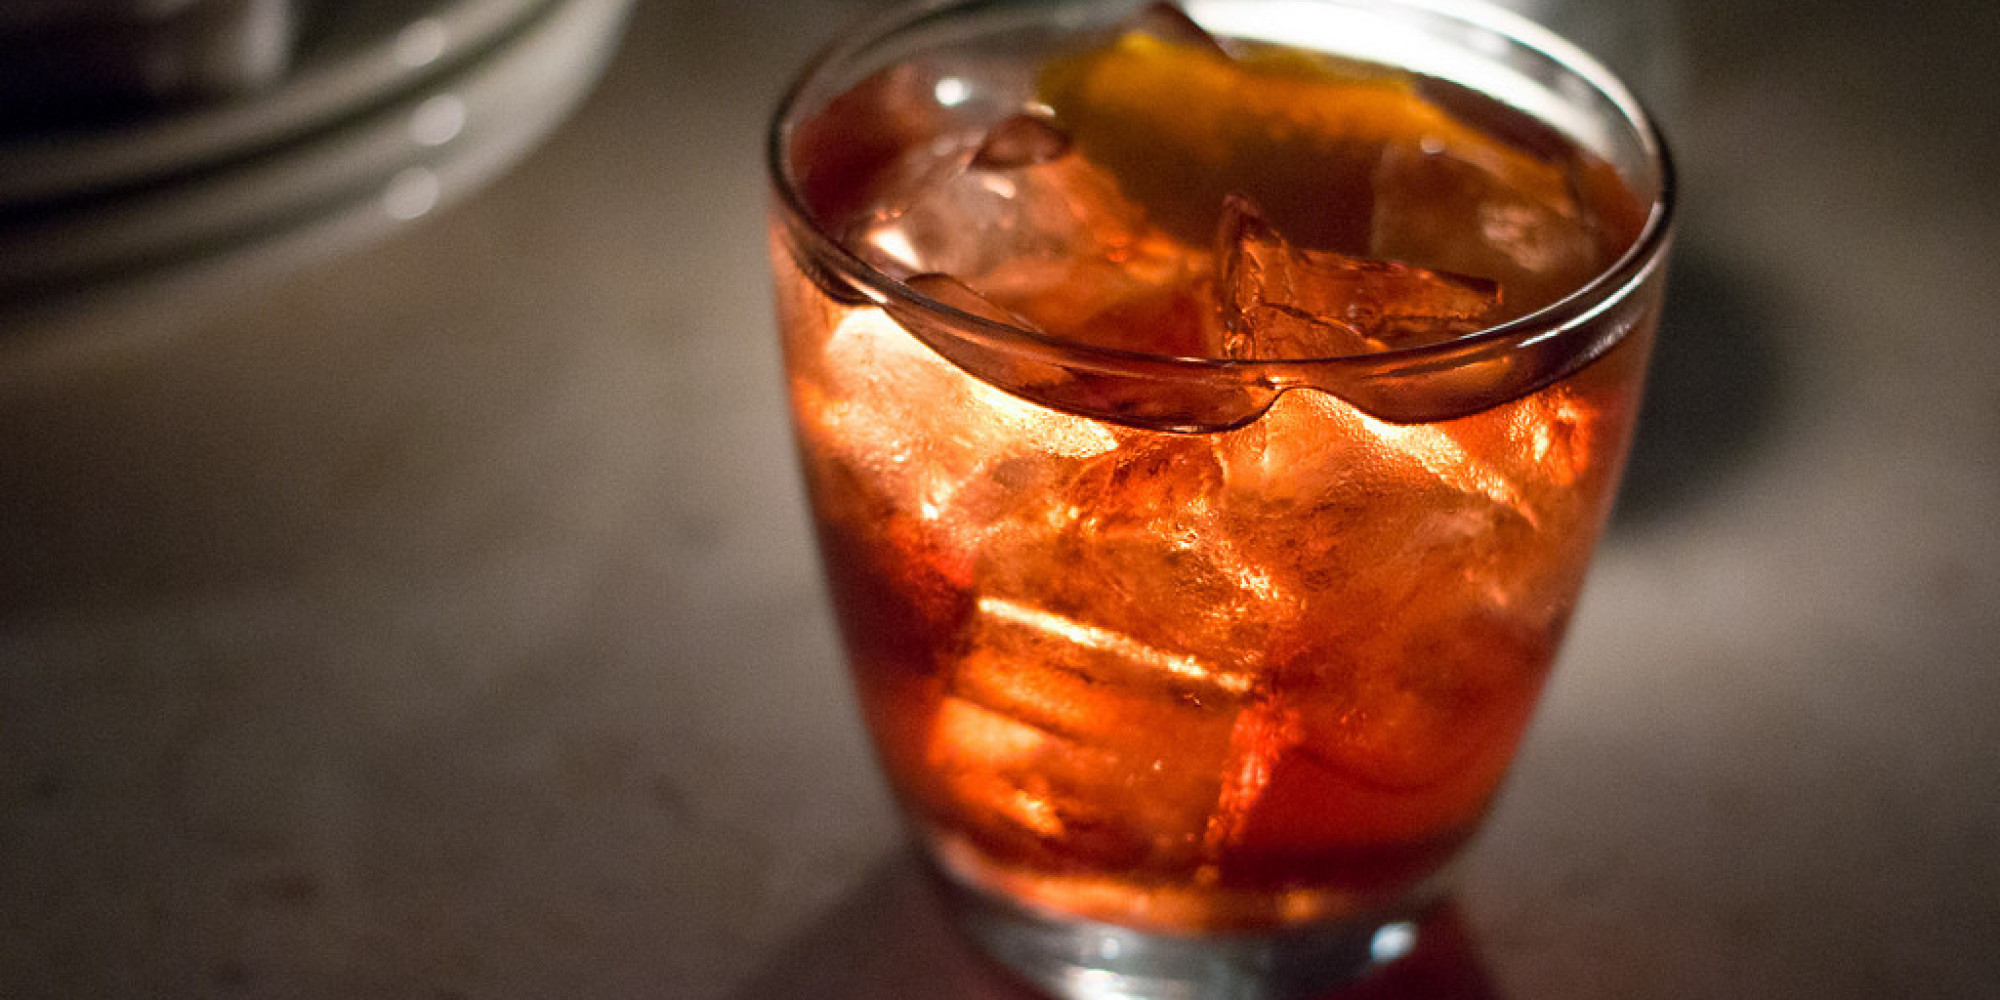 This homemade vermouth recipe makes drinking even better for Homemade aperitif recipes